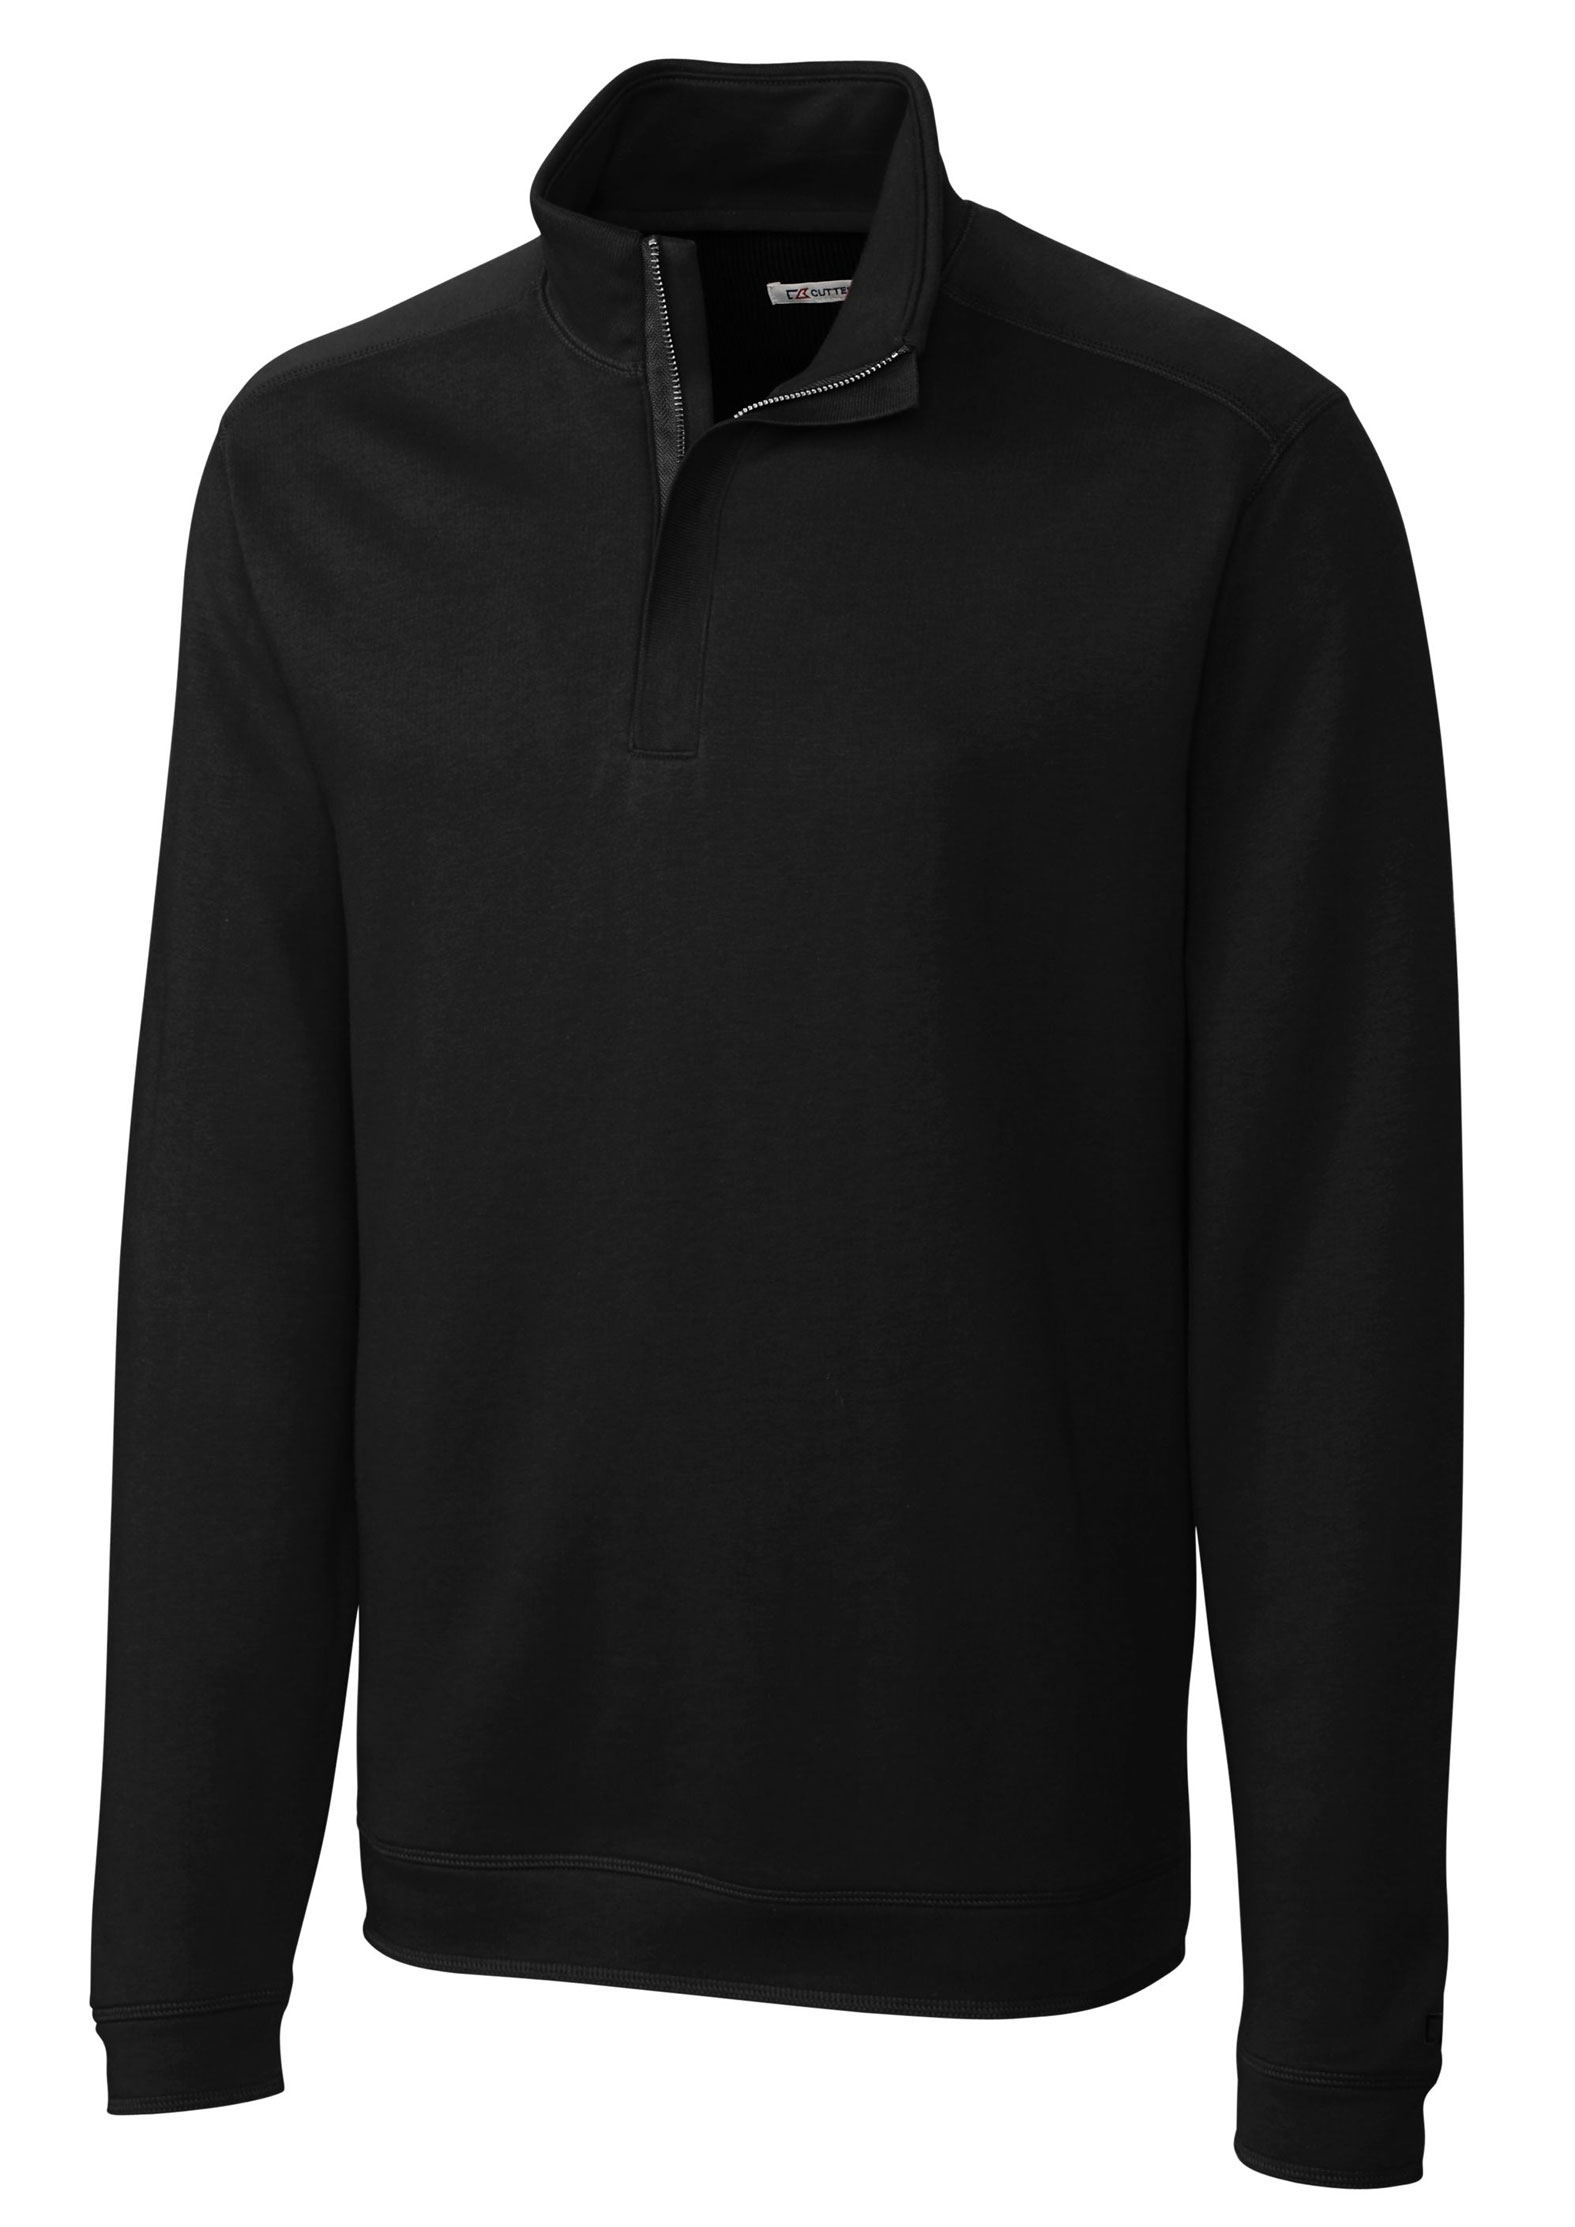 Mens Pima Decatur Half Zip in Big and Tall sizes